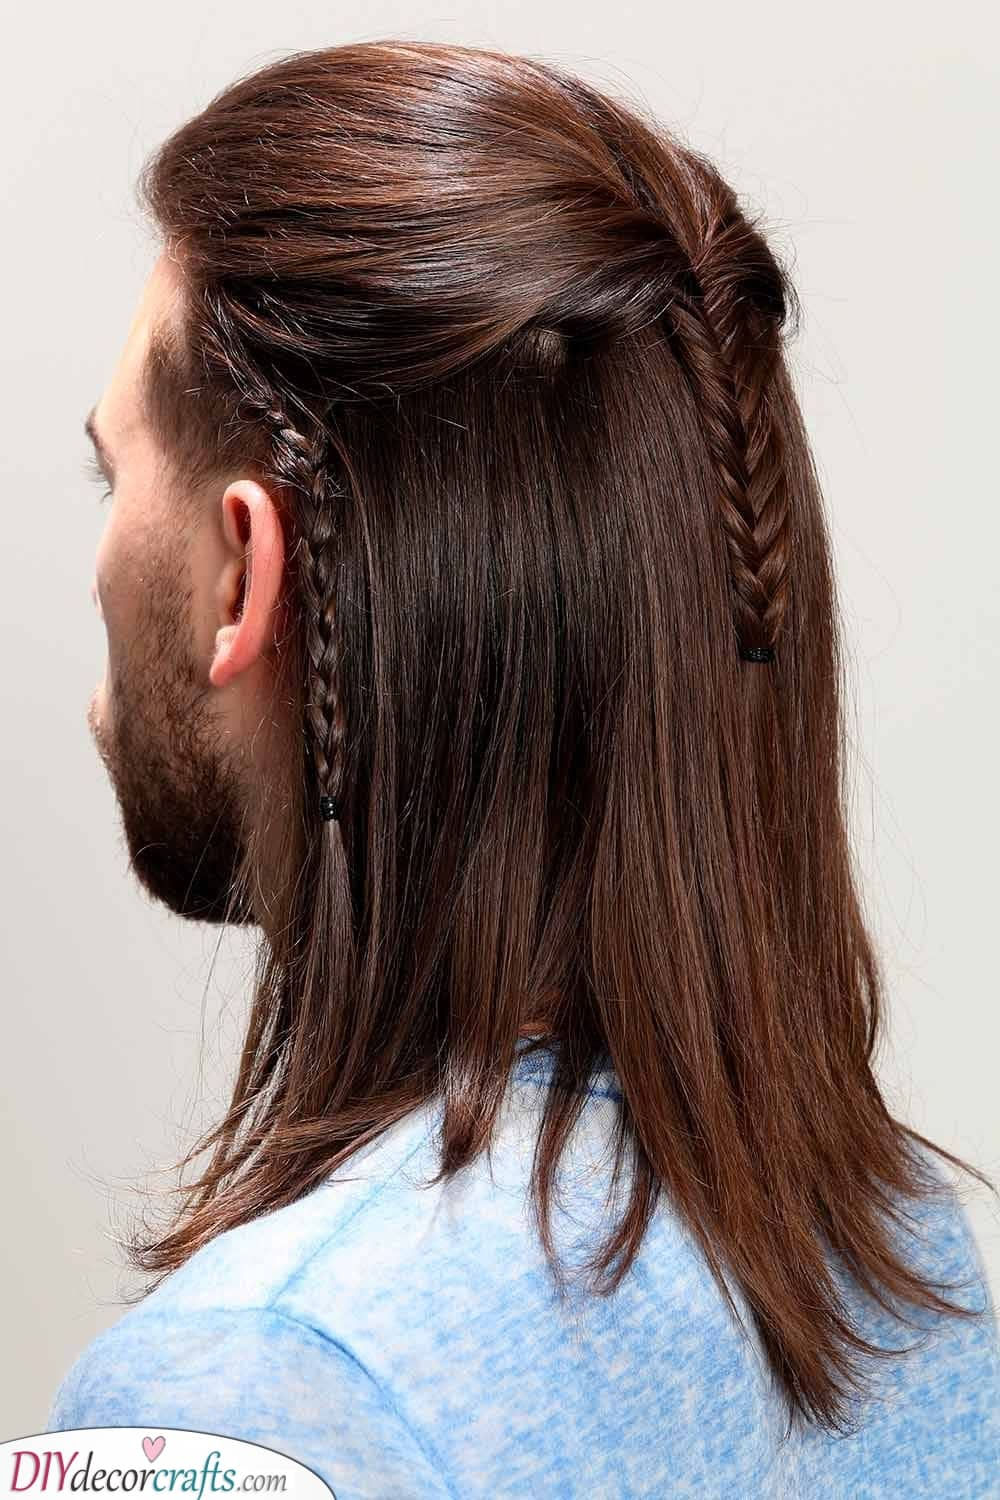 An Elf Style - Braid Hairstyles for Men